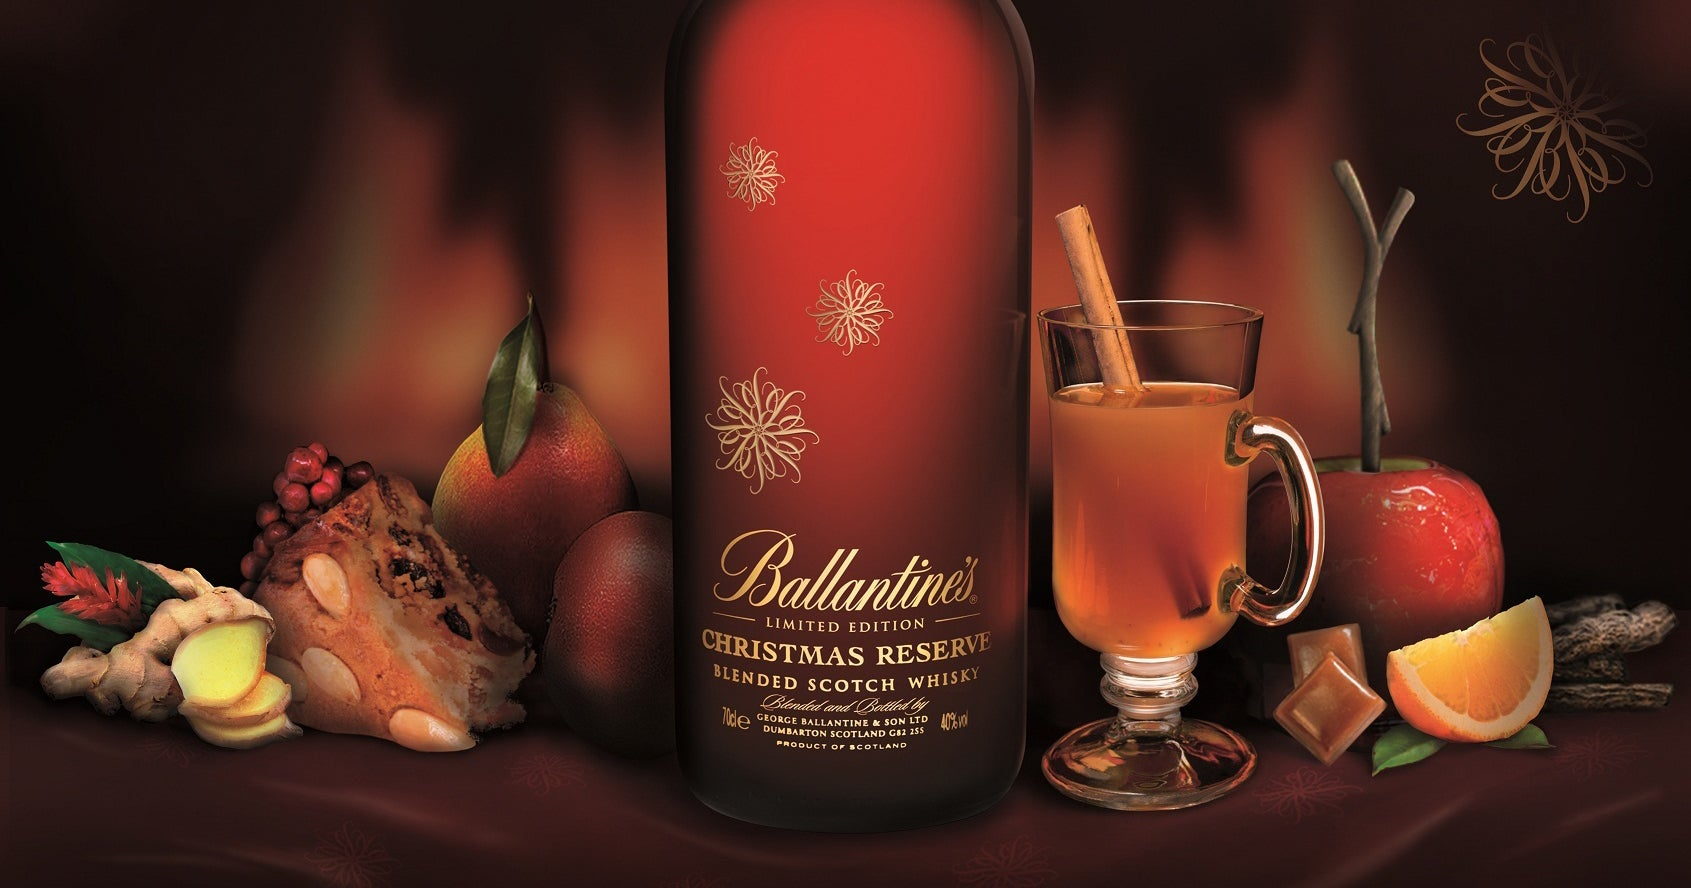 Ballantine's Christmas Reserve Hot Christmas Punch